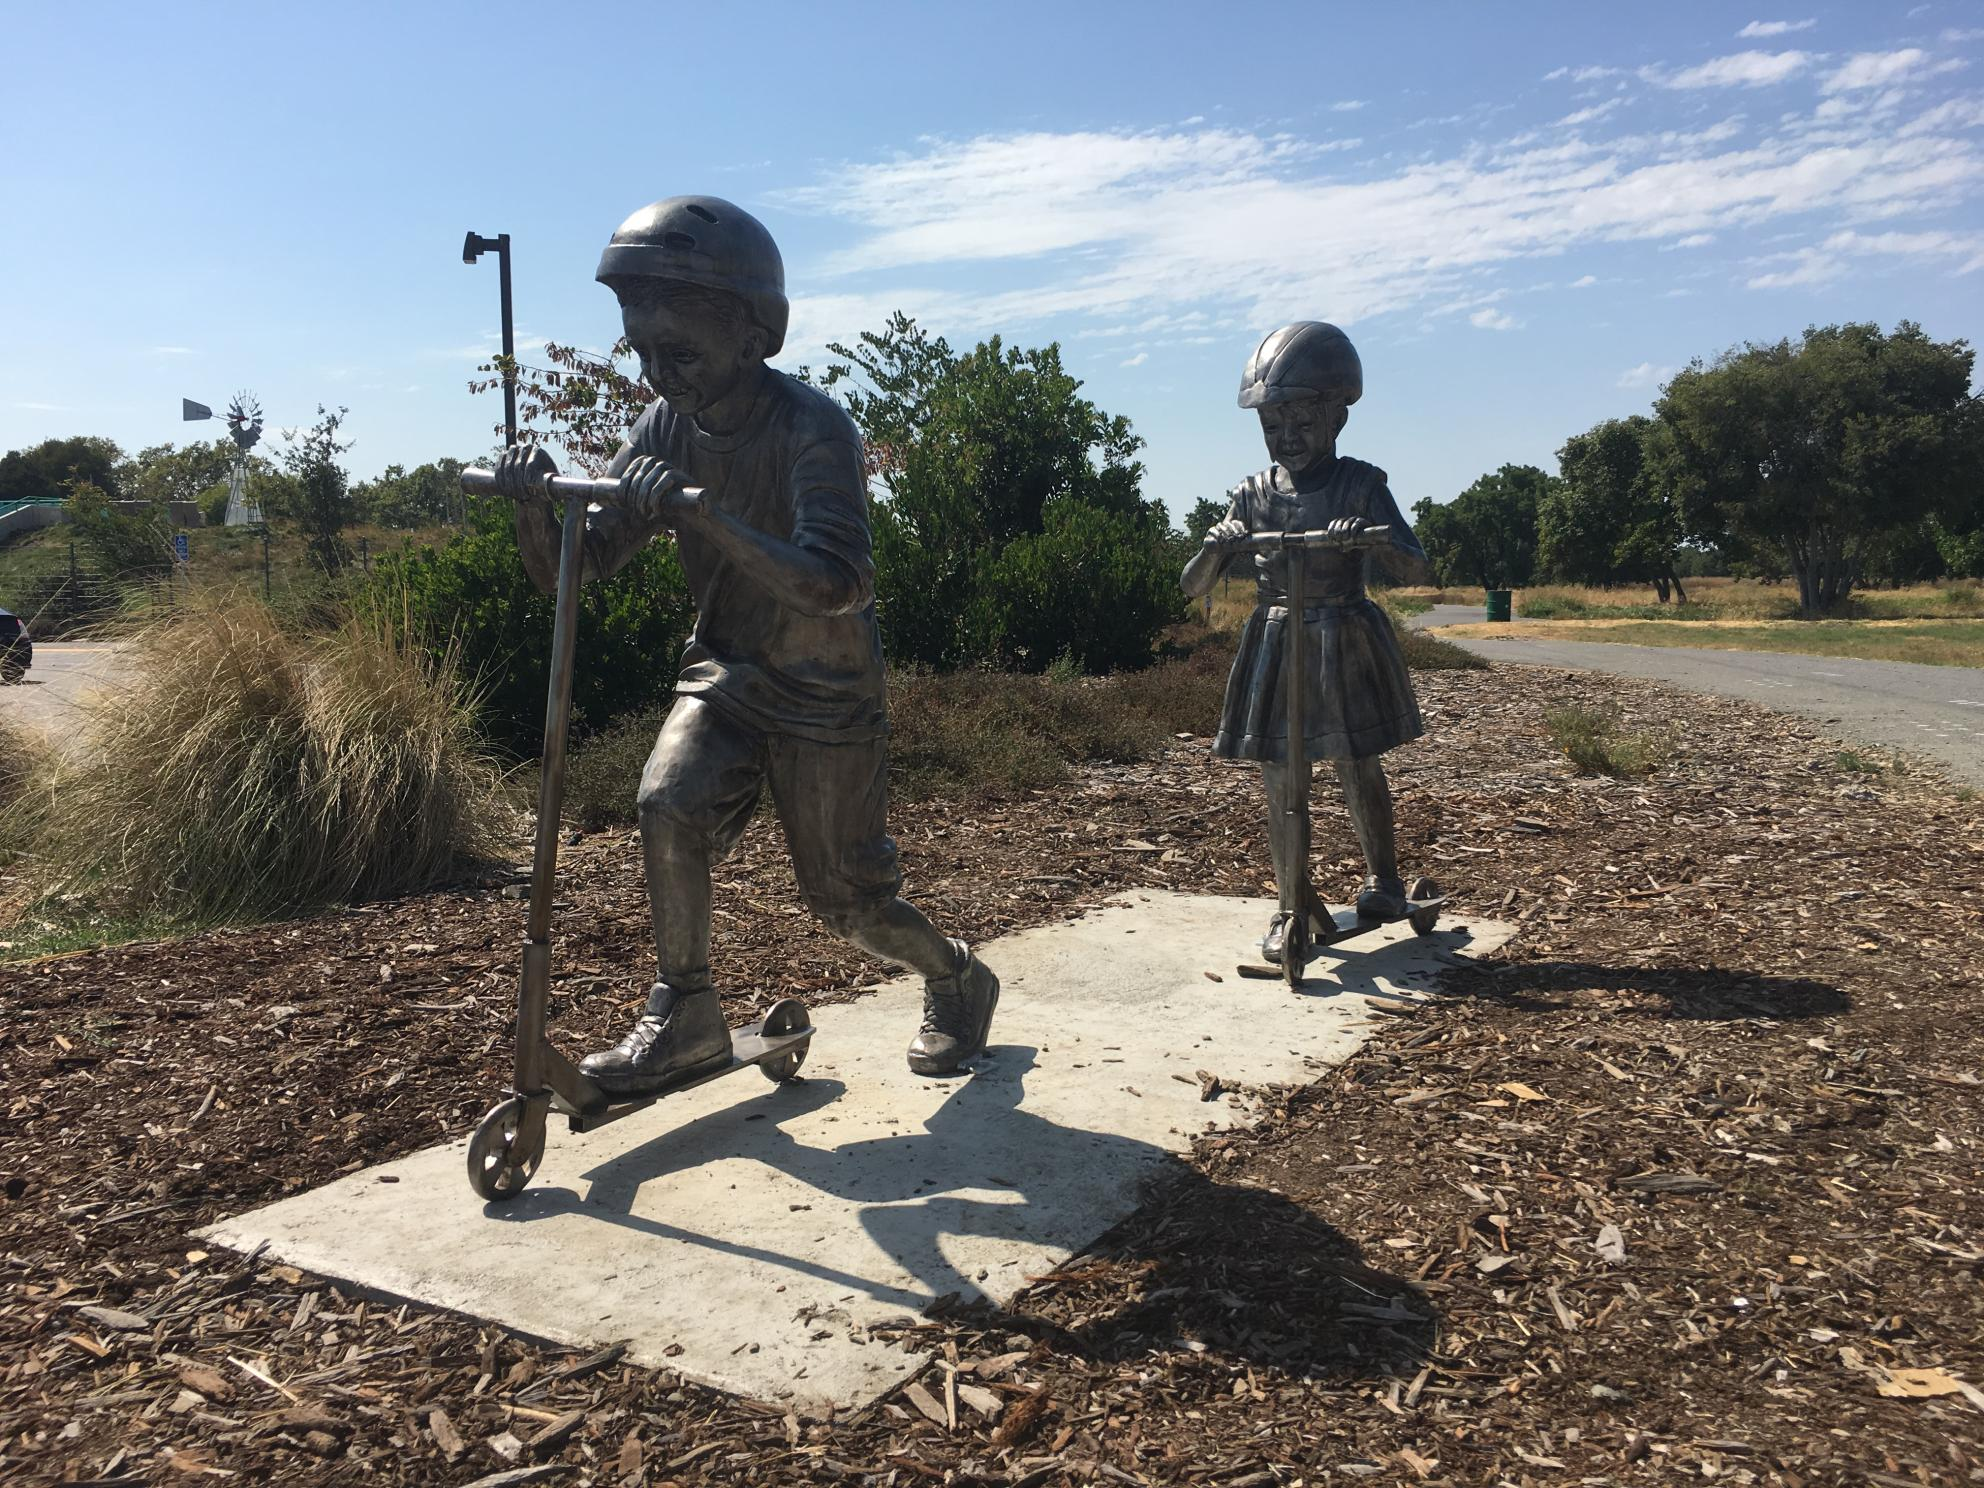 Children's Rotary Sculpture Walk Statues - Children on Scooters